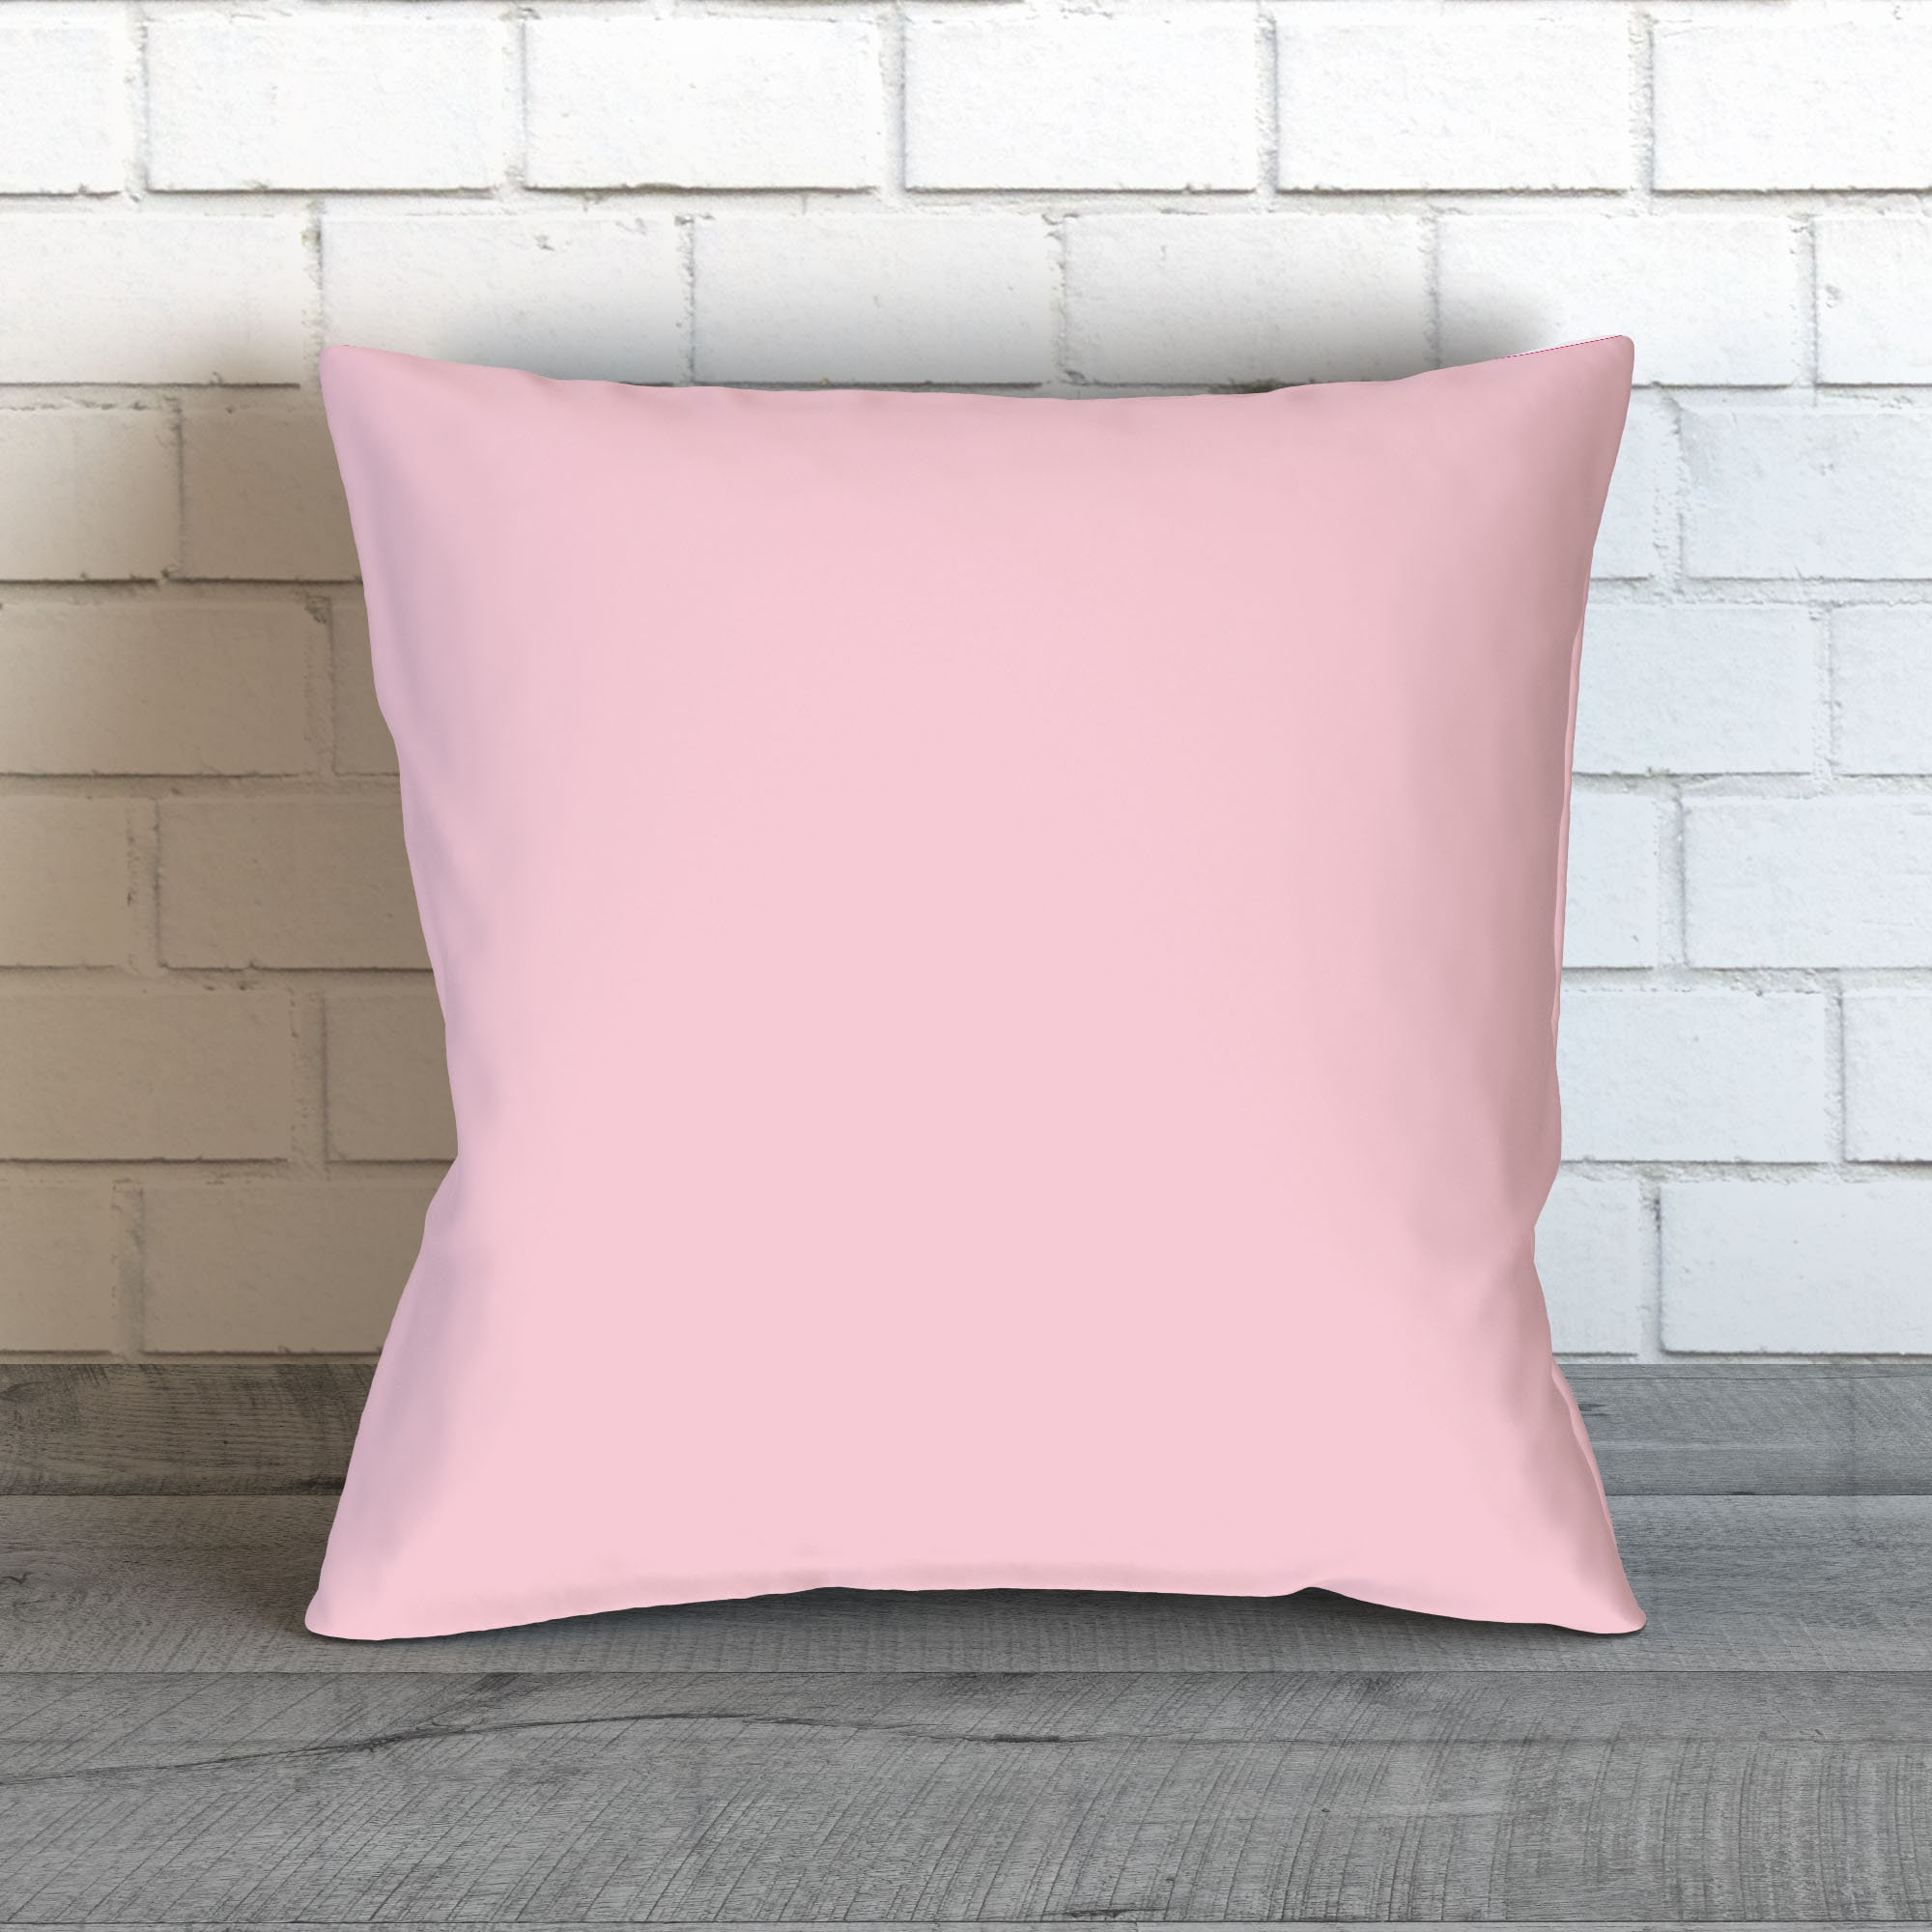 cushion photos best blanket pink gallery light baby pale throw of decorative pillow pillows